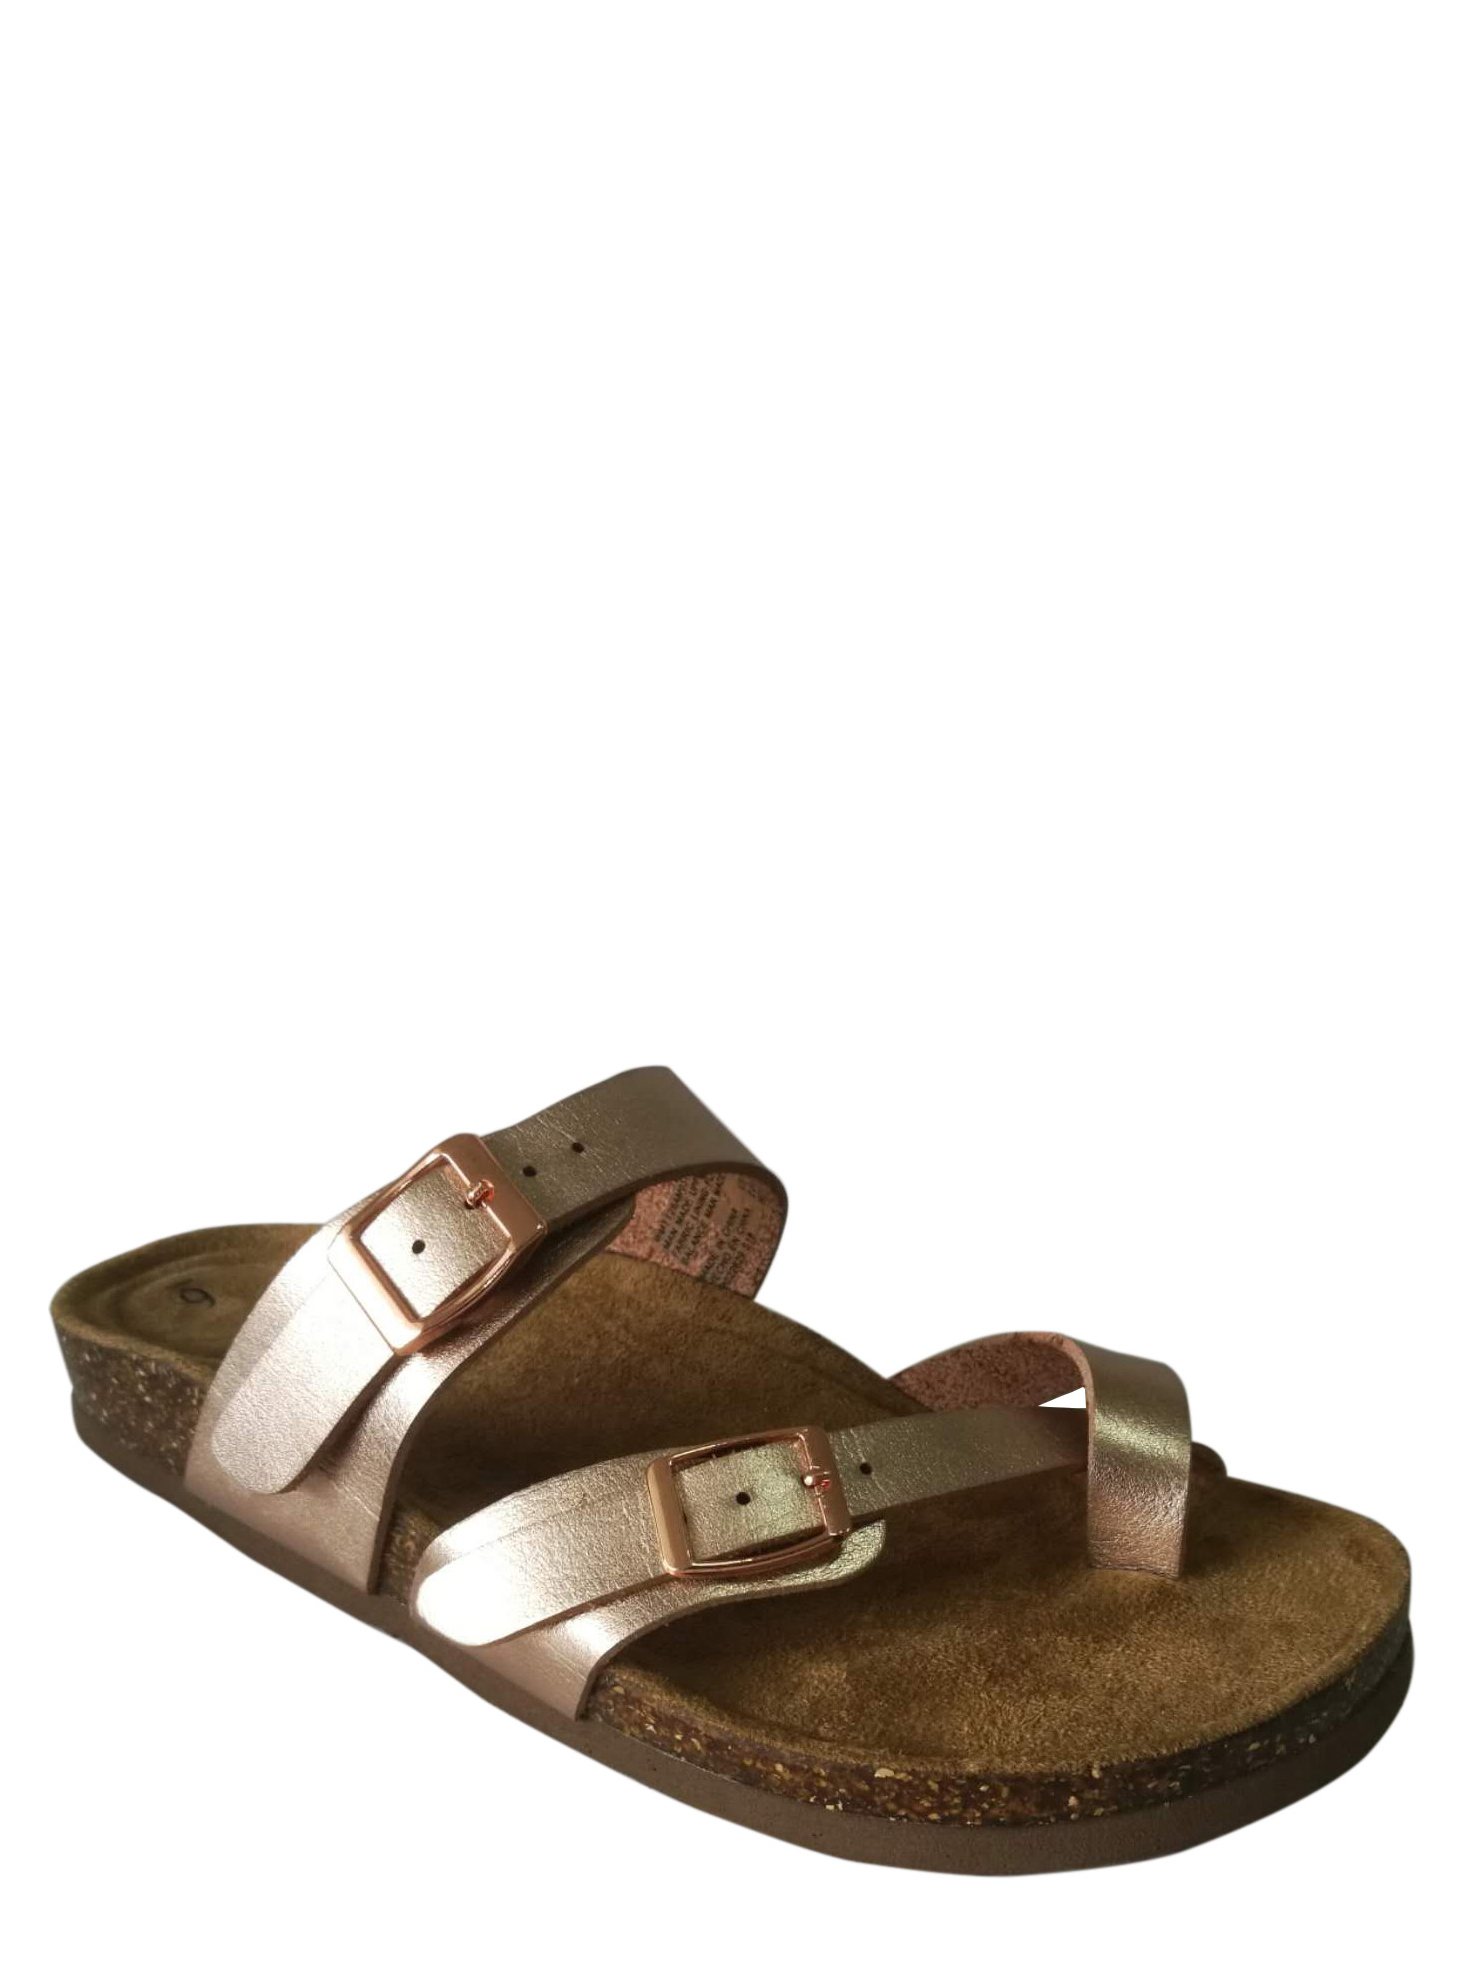 Time and Tru Women's Cork Slide